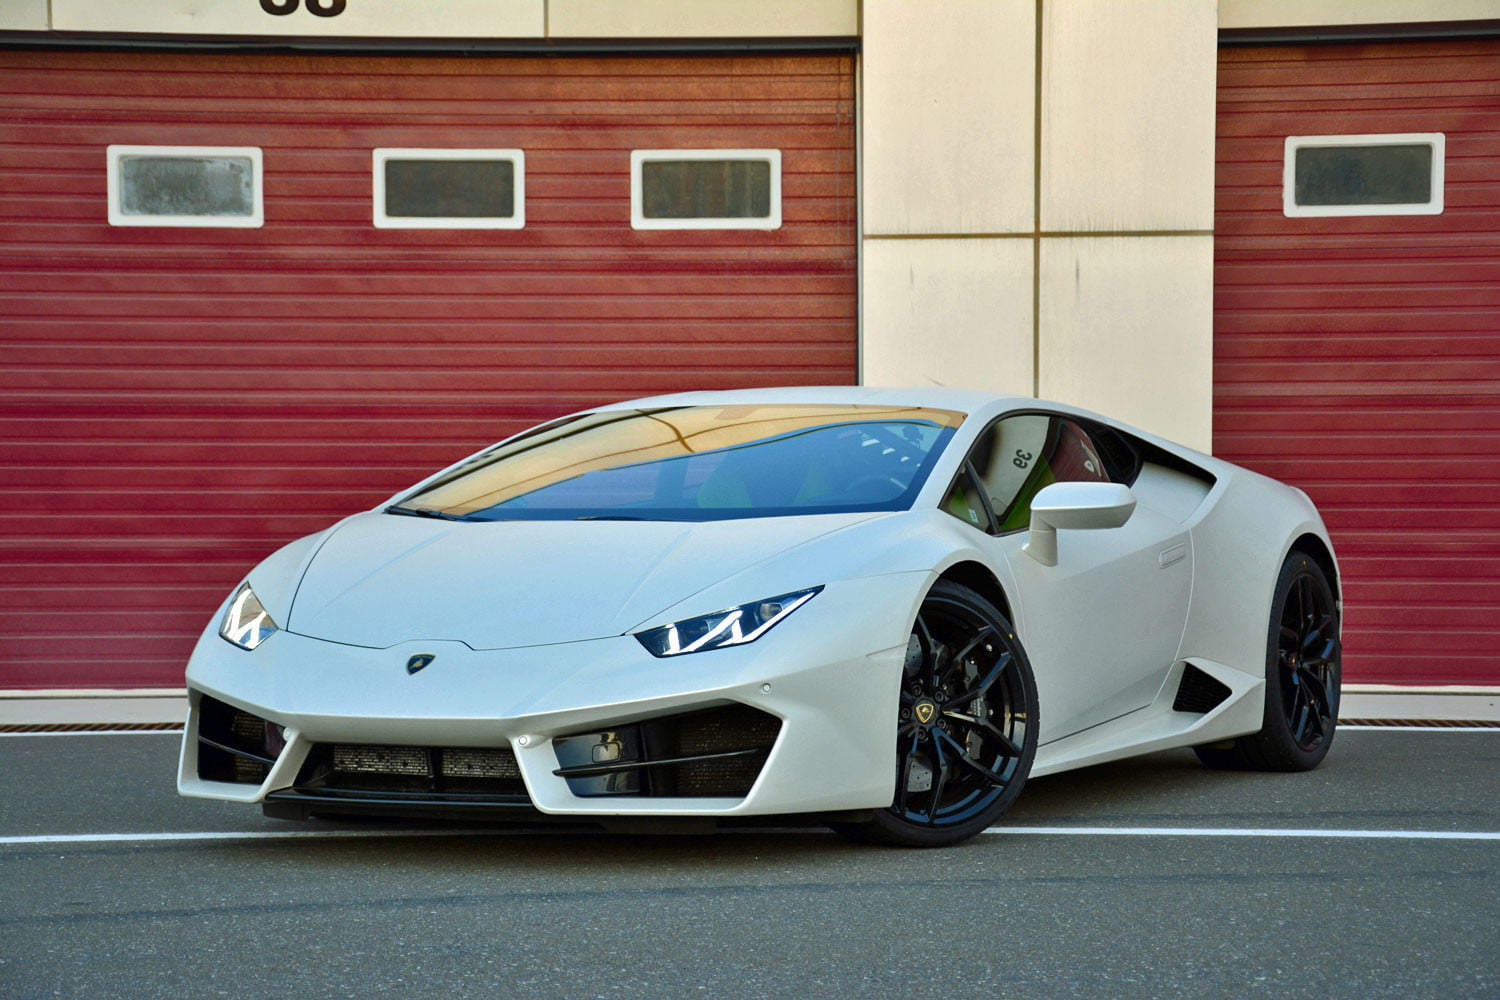 lamborghini huracan lp 580 2 price usa fiat world test drive. Black Bedroom Furniture Sets. Home Design Ideas